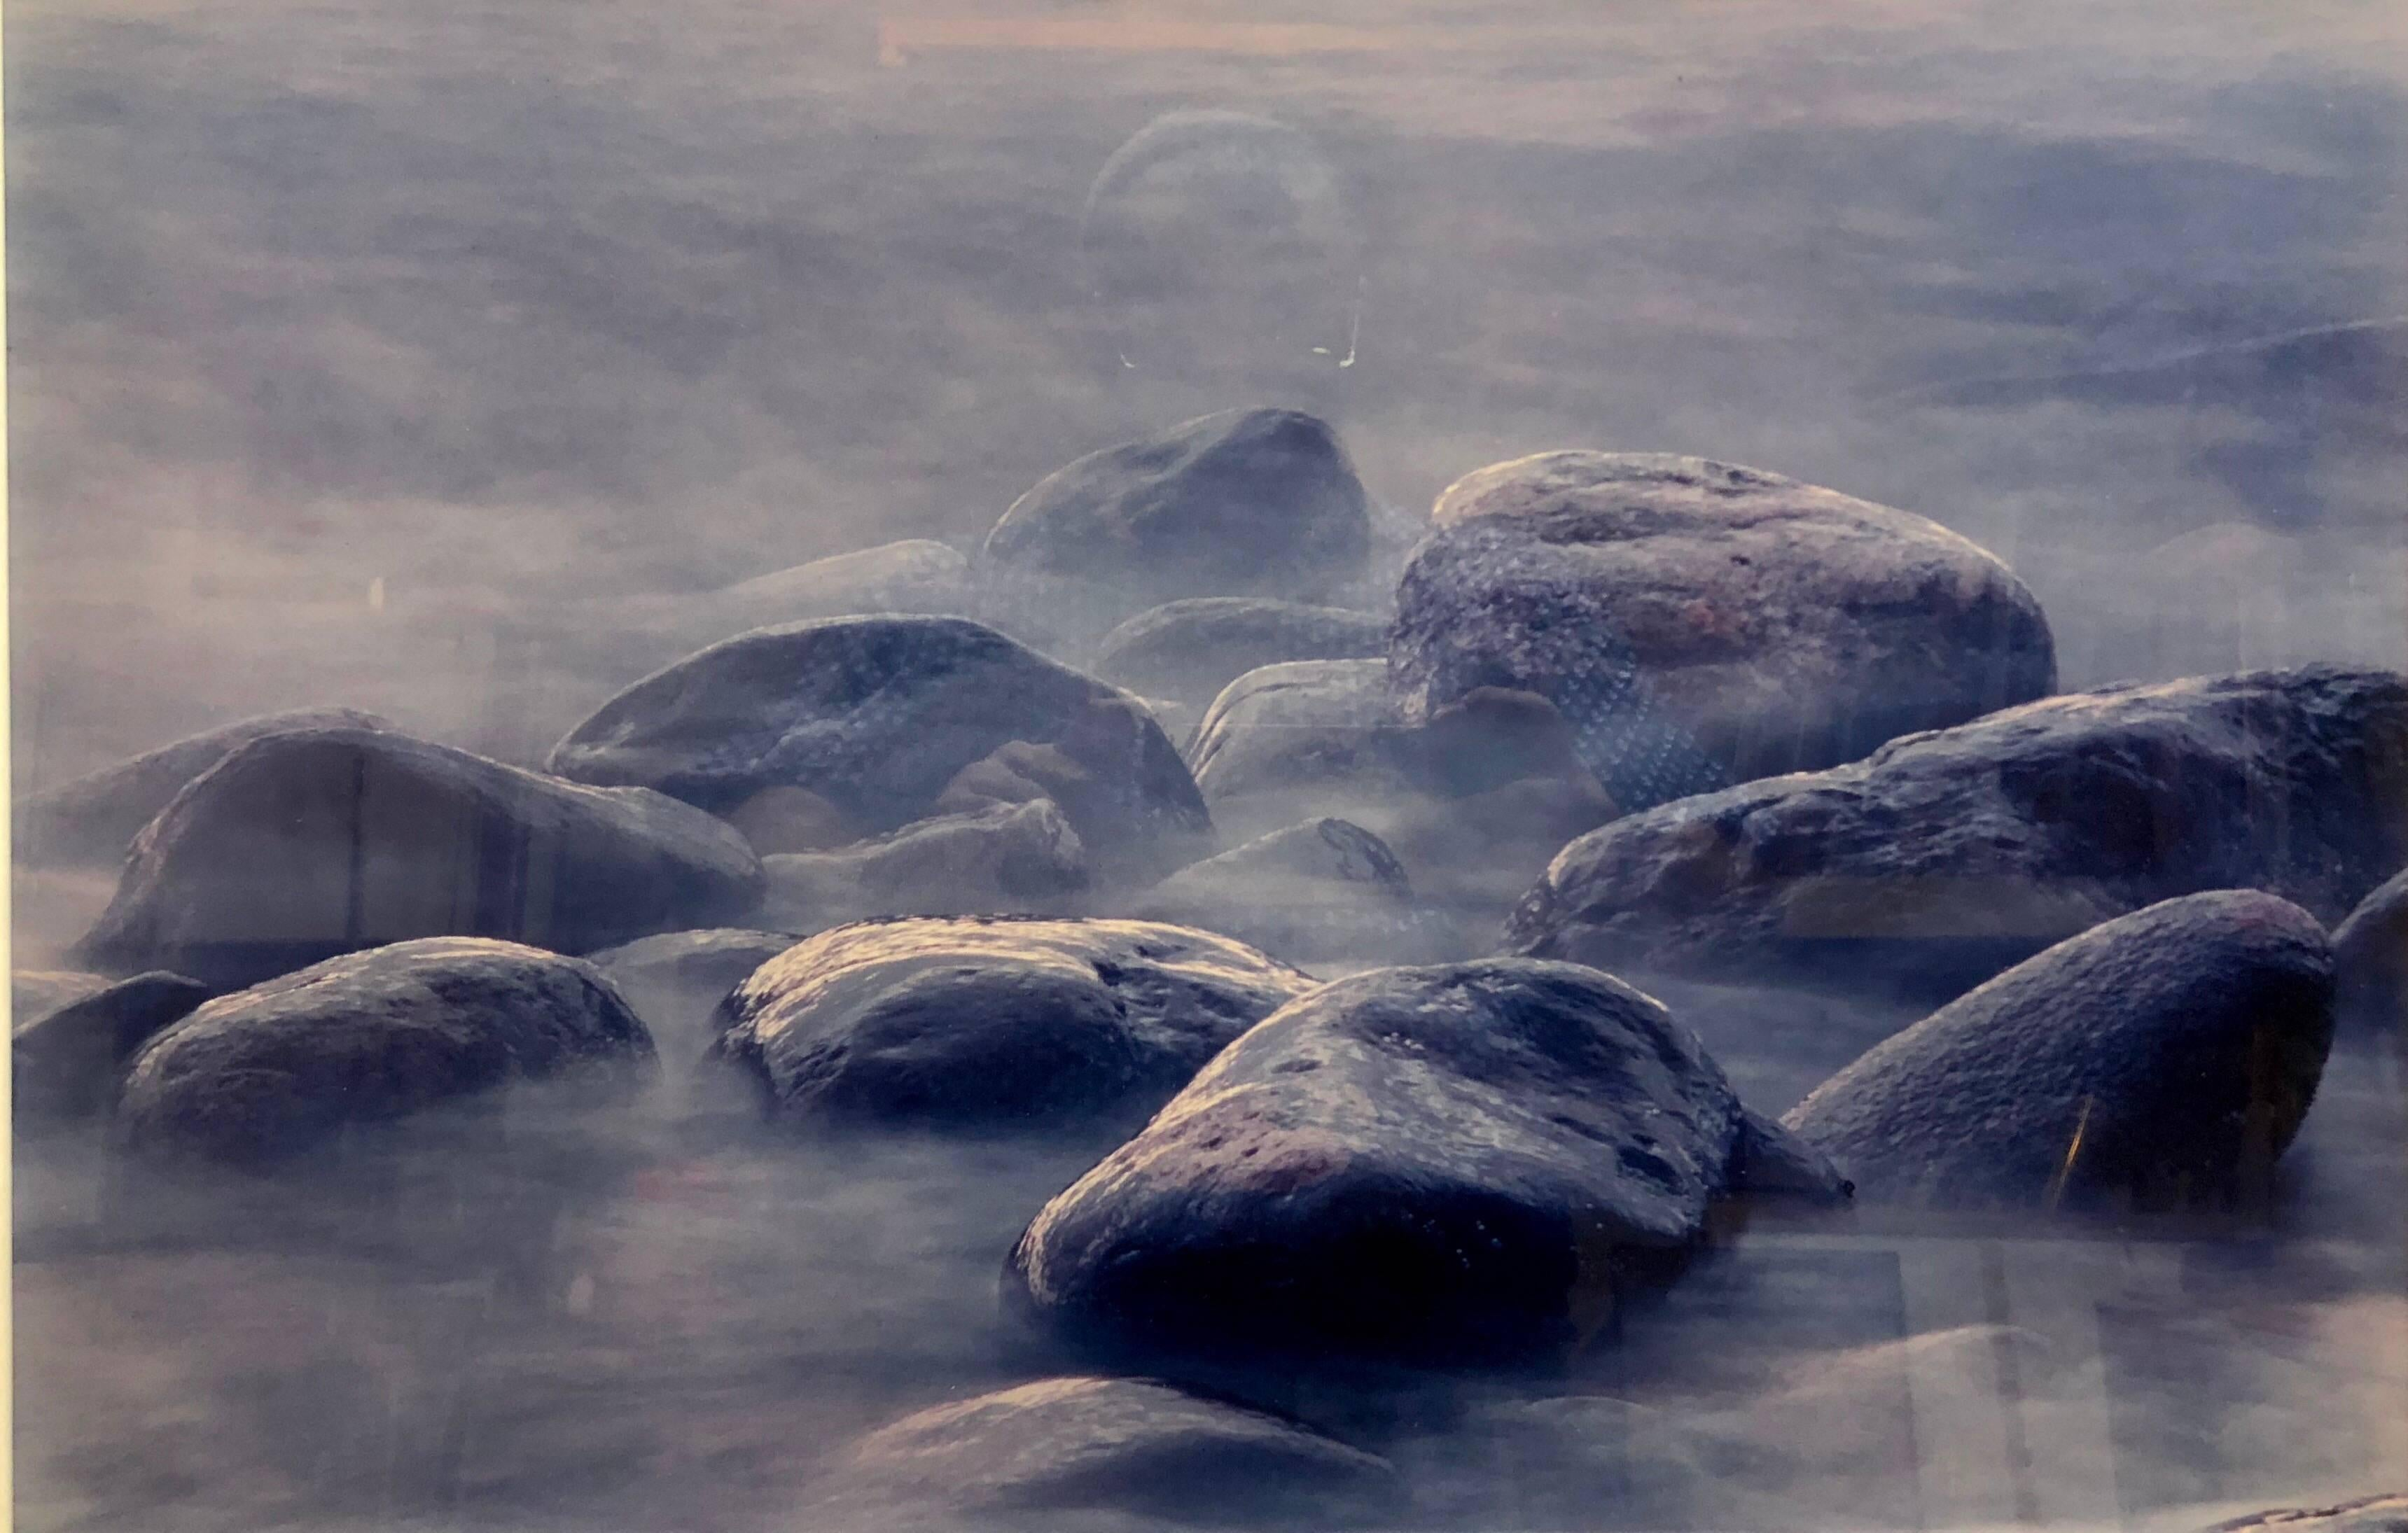 """Vintage C Print """"Of Time and Change"""" Boulders on a Sea Shore"""